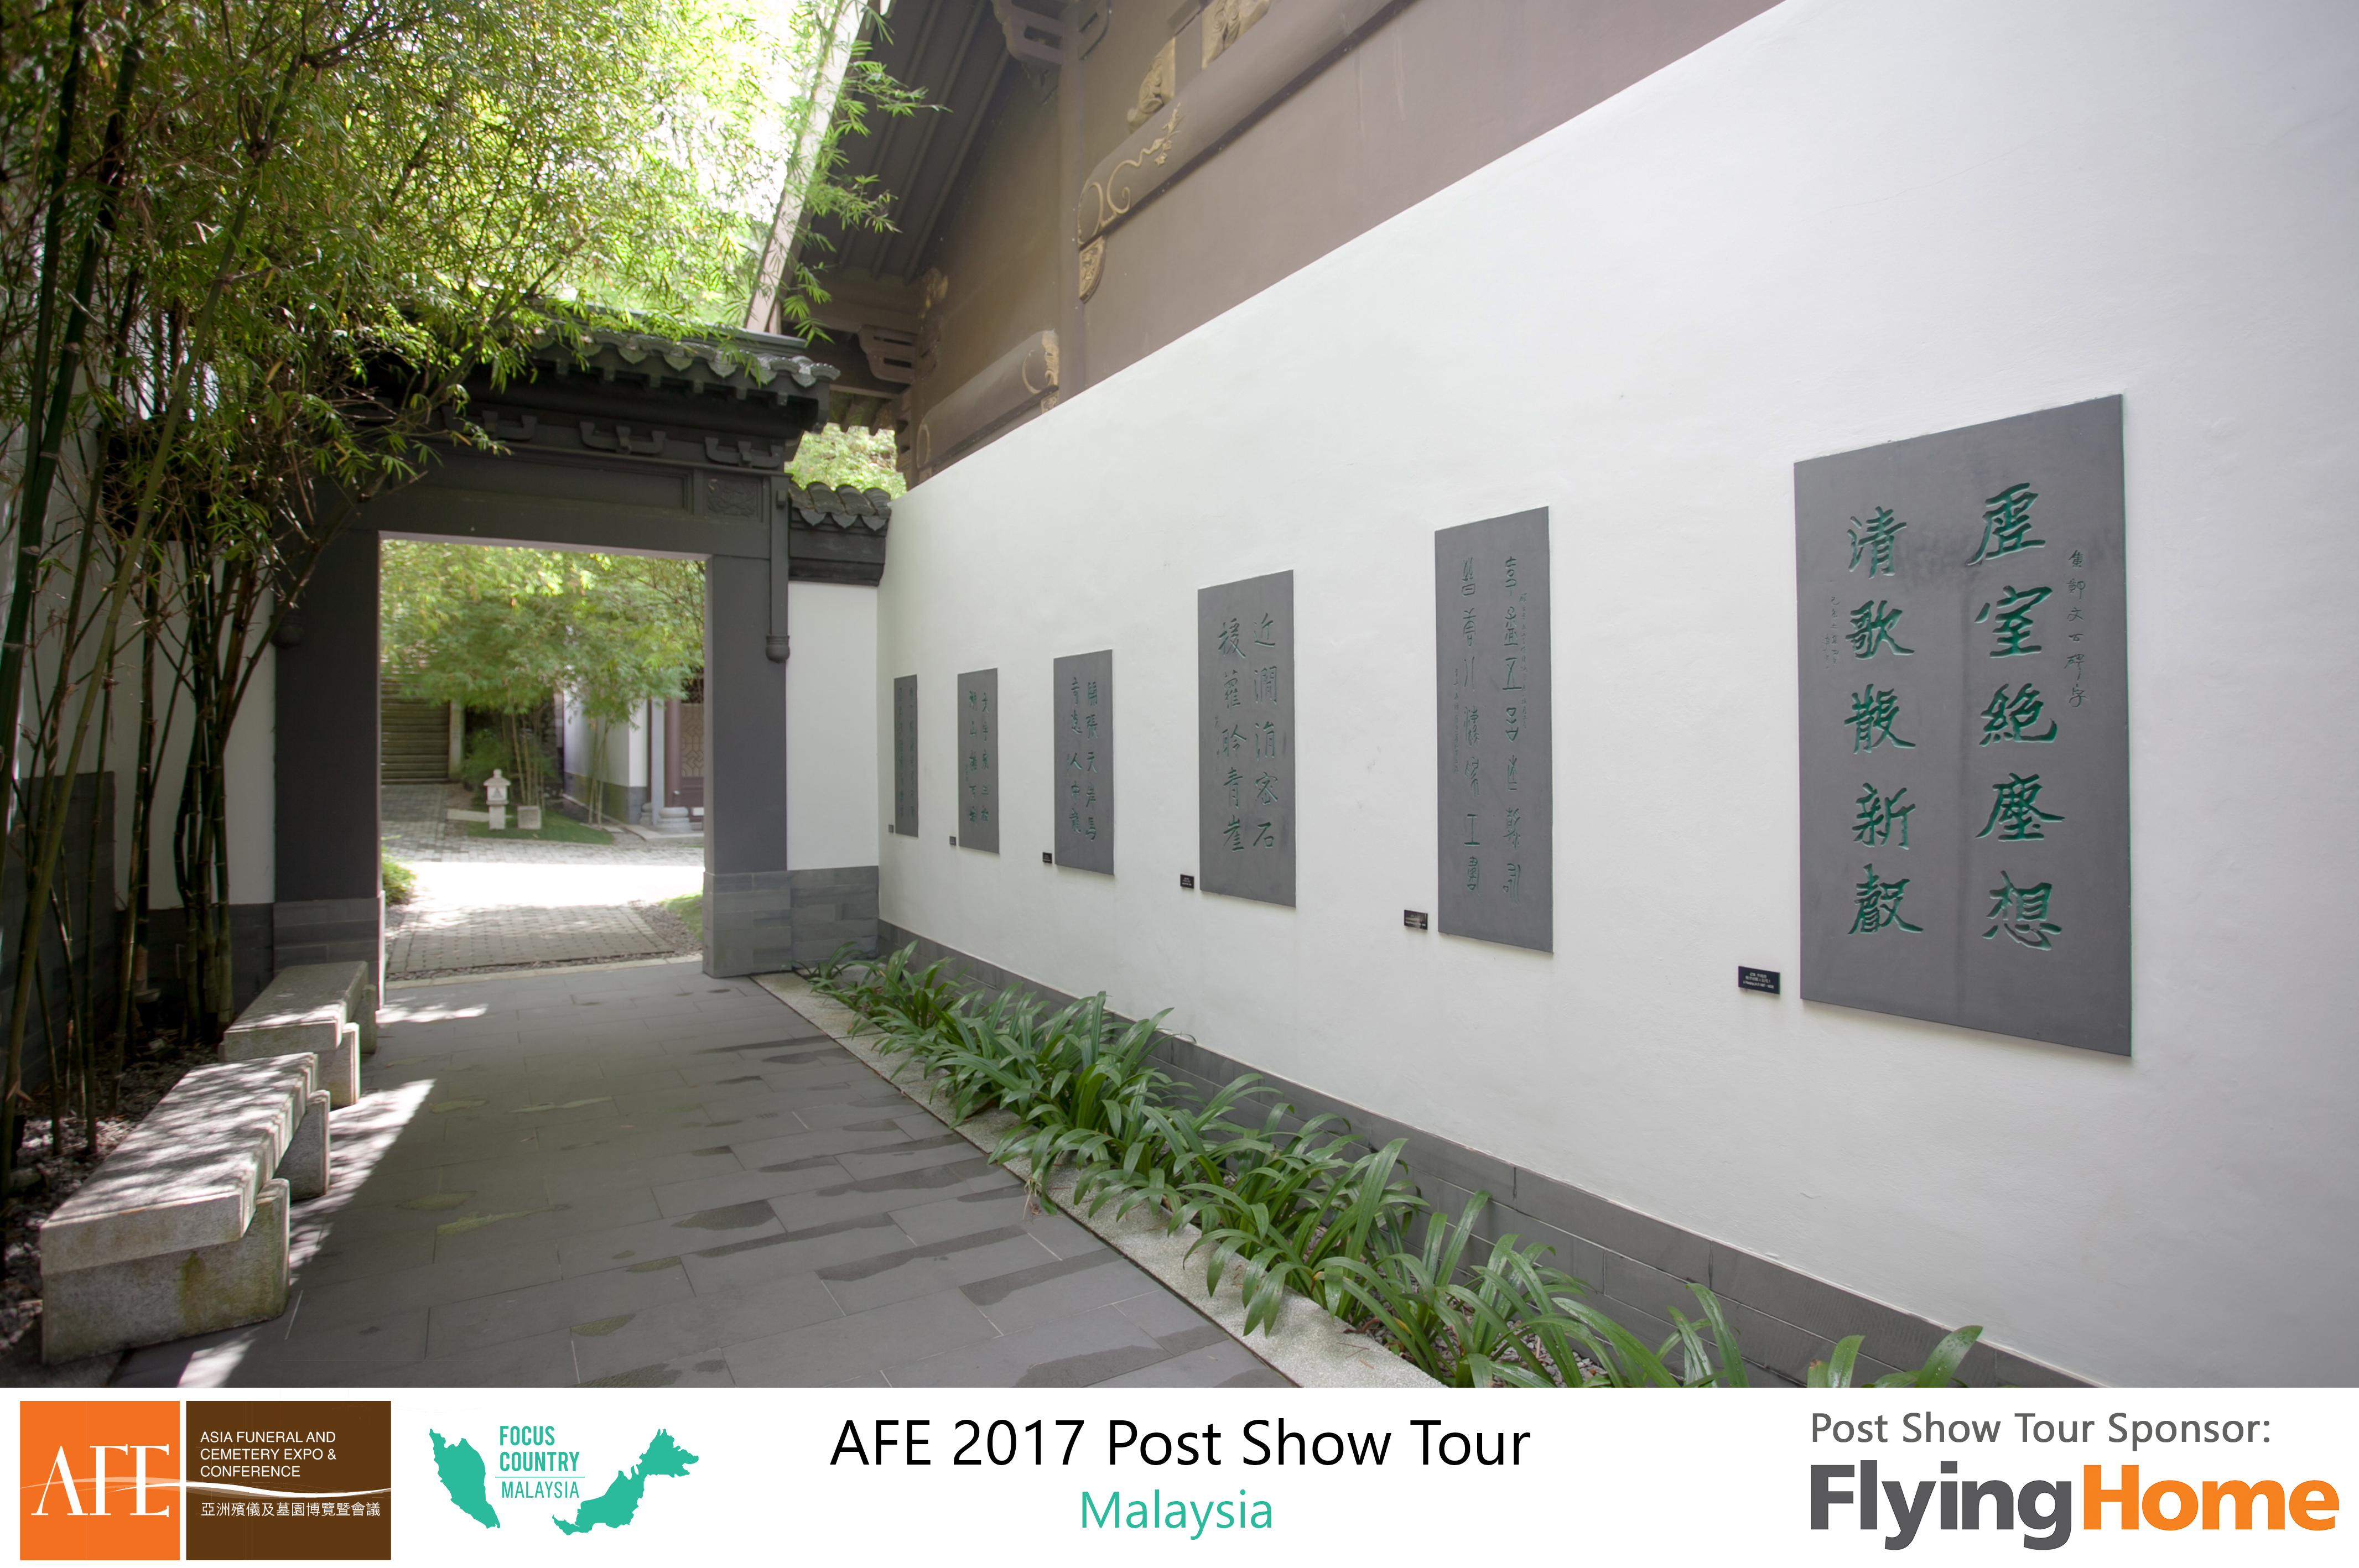 AFE Post Show Tour 2017 Day 2 - 55